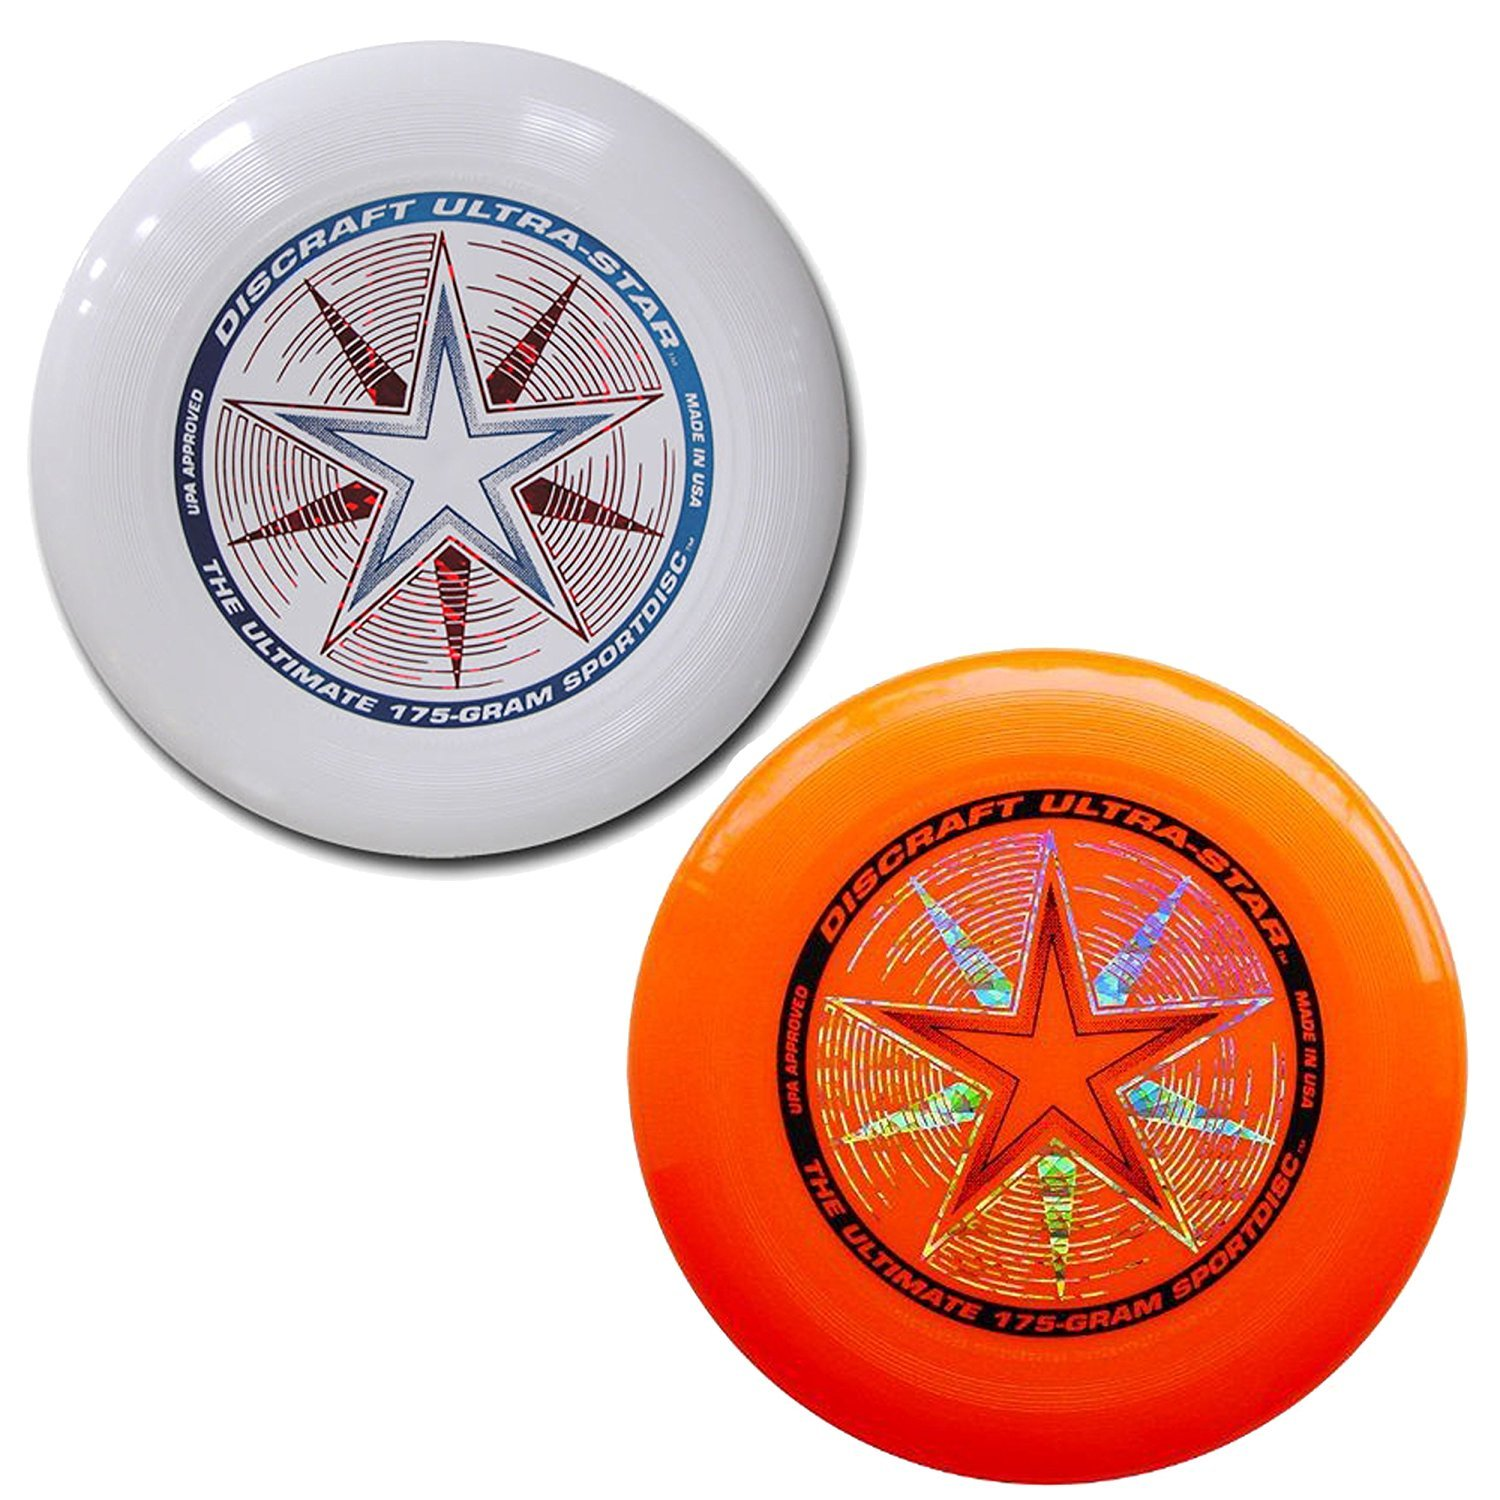 Discraft 175 gram Ultra Star Sport Disc - 2 Pack (White & Orange) by Discraft